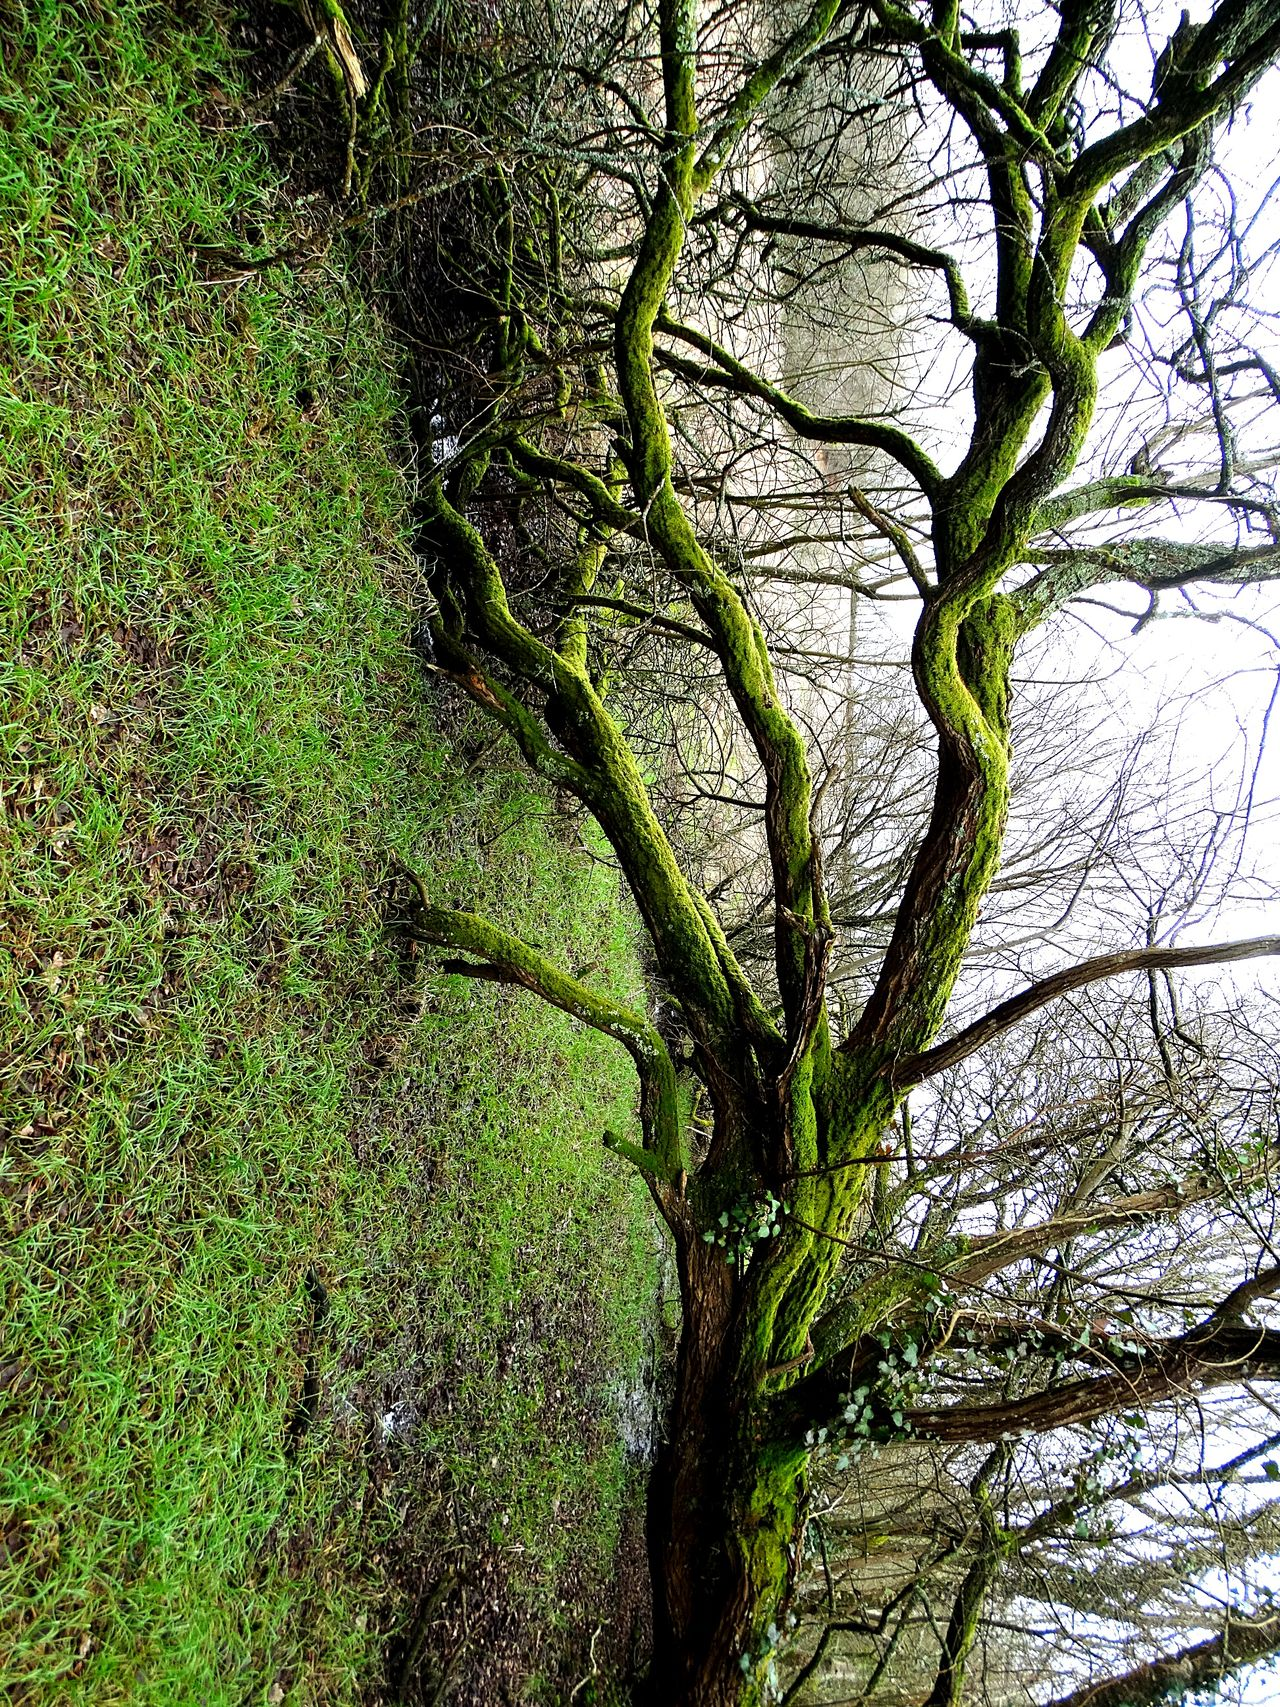 Nature No People Tree Growth Green Color Beauty In Nature Outdoors Day Wind Damage Fallen Tree Over A Stream Abstract Tranquility Morbihan France Ploerdut Marsh Green Color Winter Branch Fallen Trees Over Water Dark Forest Fallen Tree